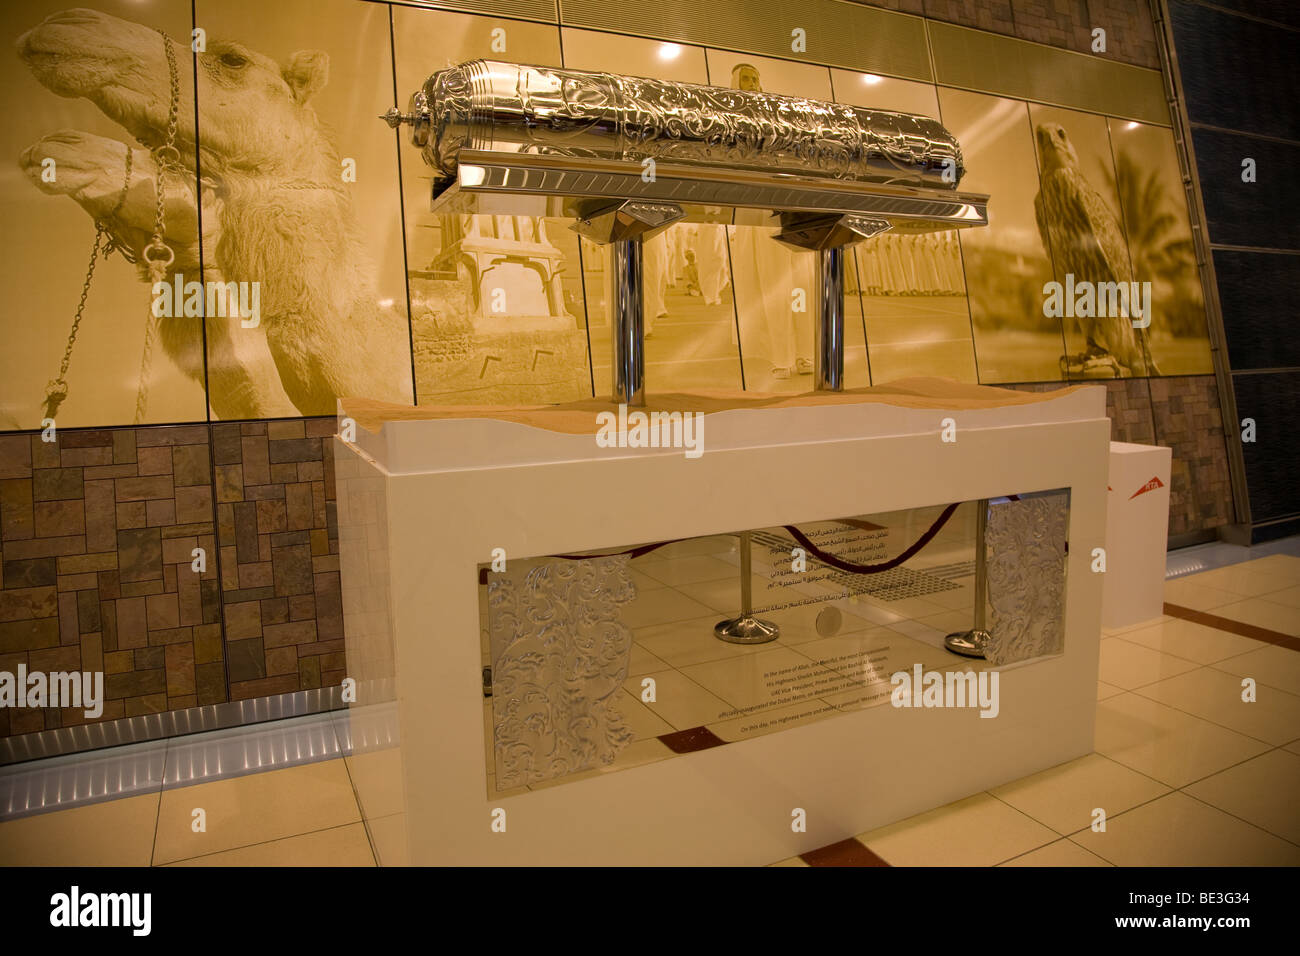 Time Capsule Dubai Metro Union Station UAE Stock Photo